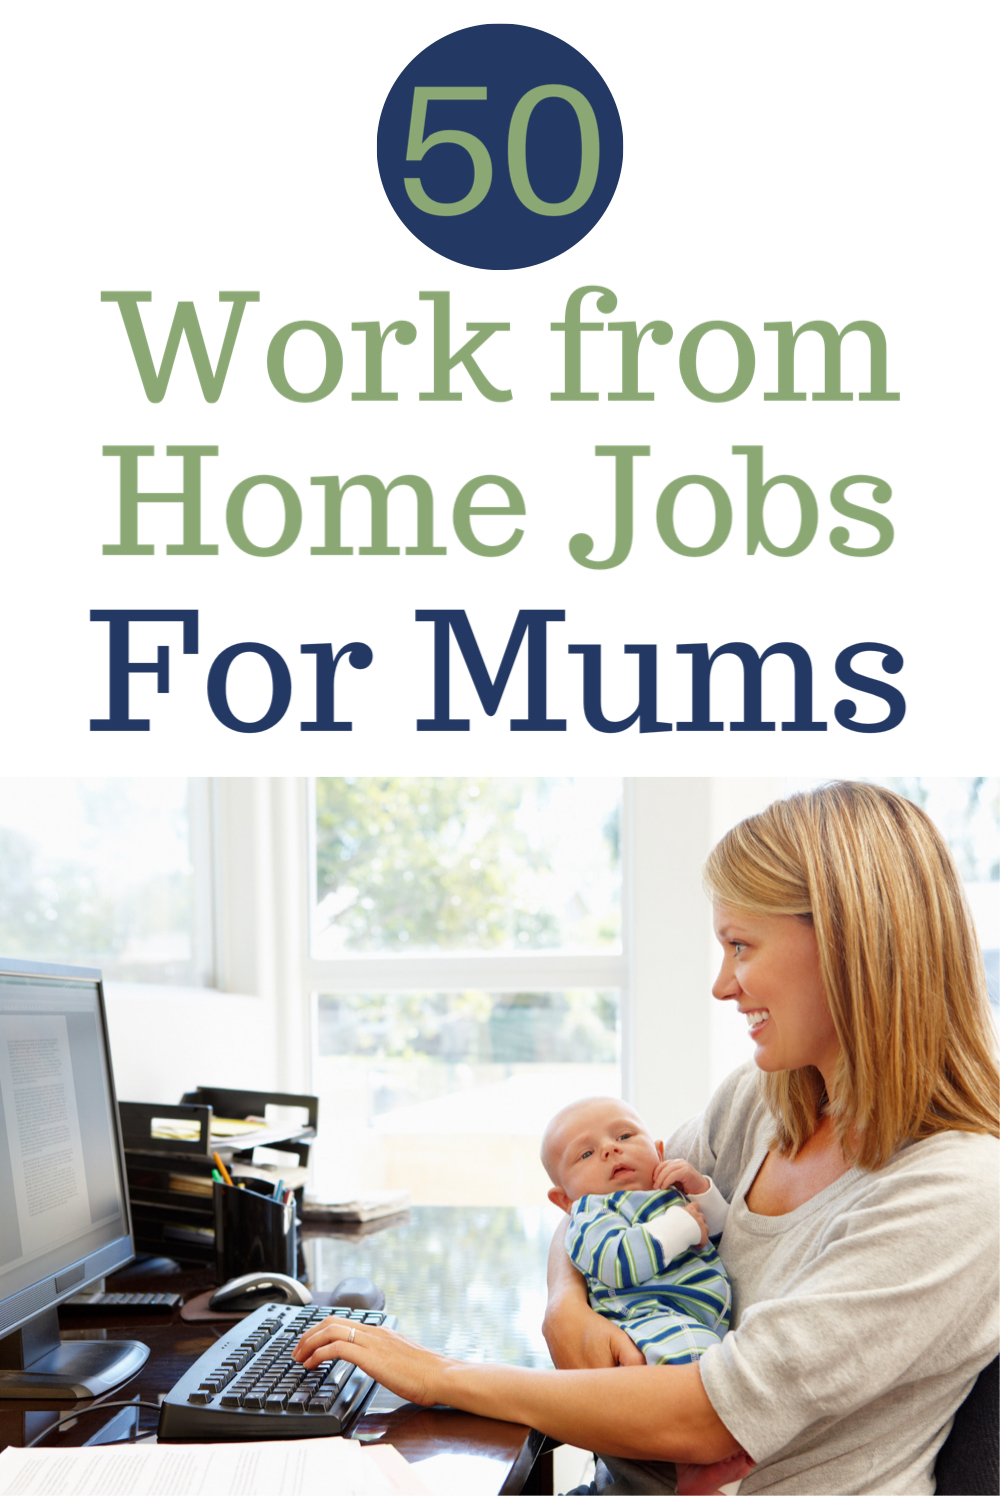 50 work from home jobs for mums